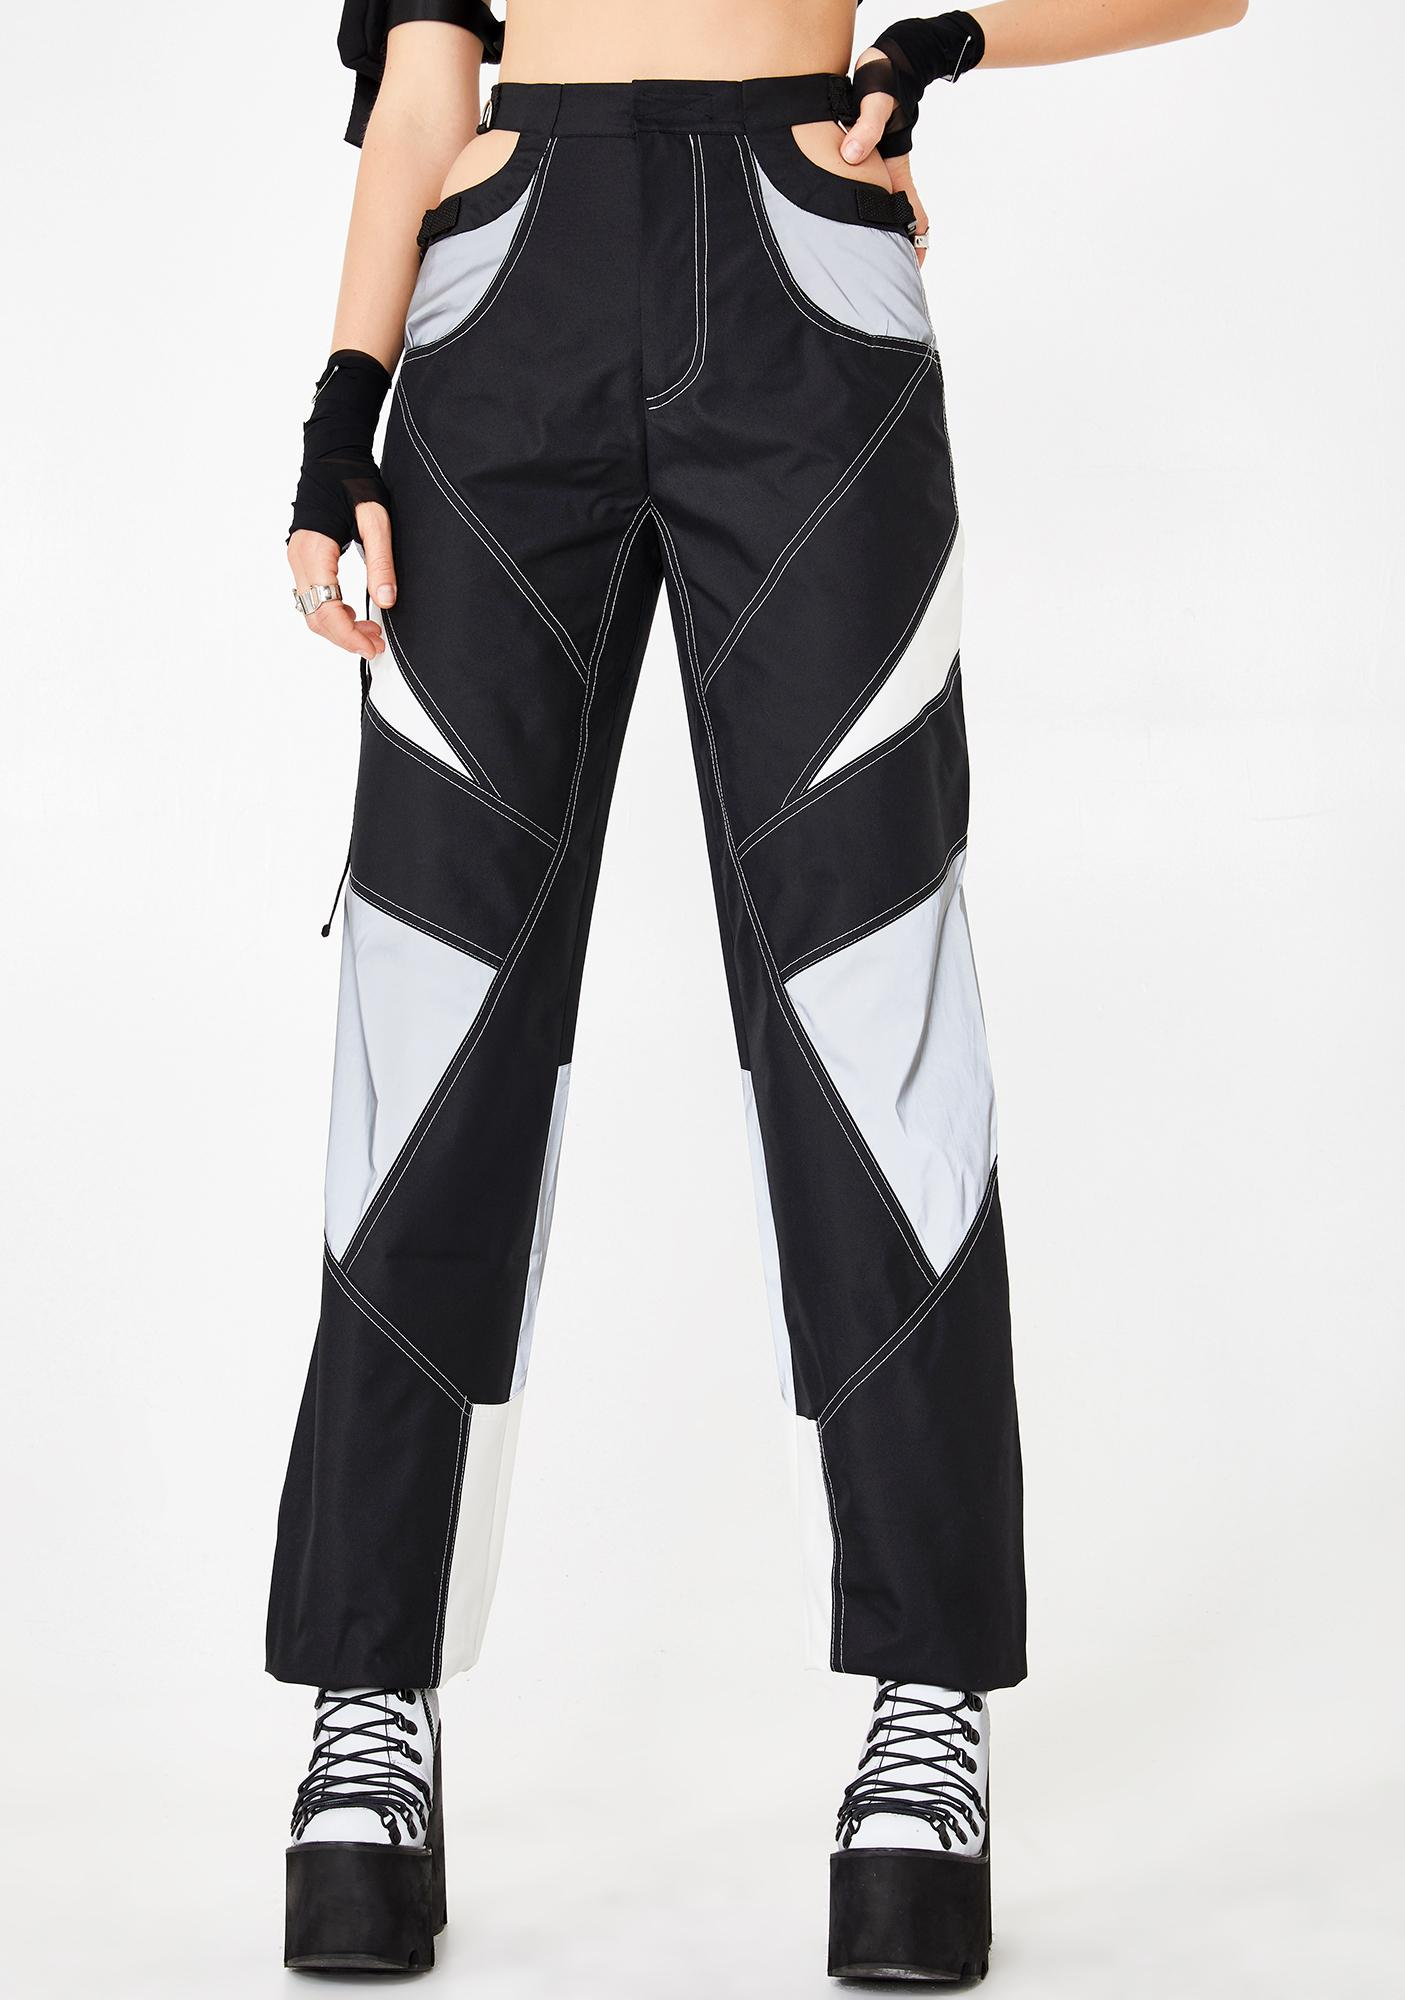 Namilia Reflective Motocross Bumster Trousers